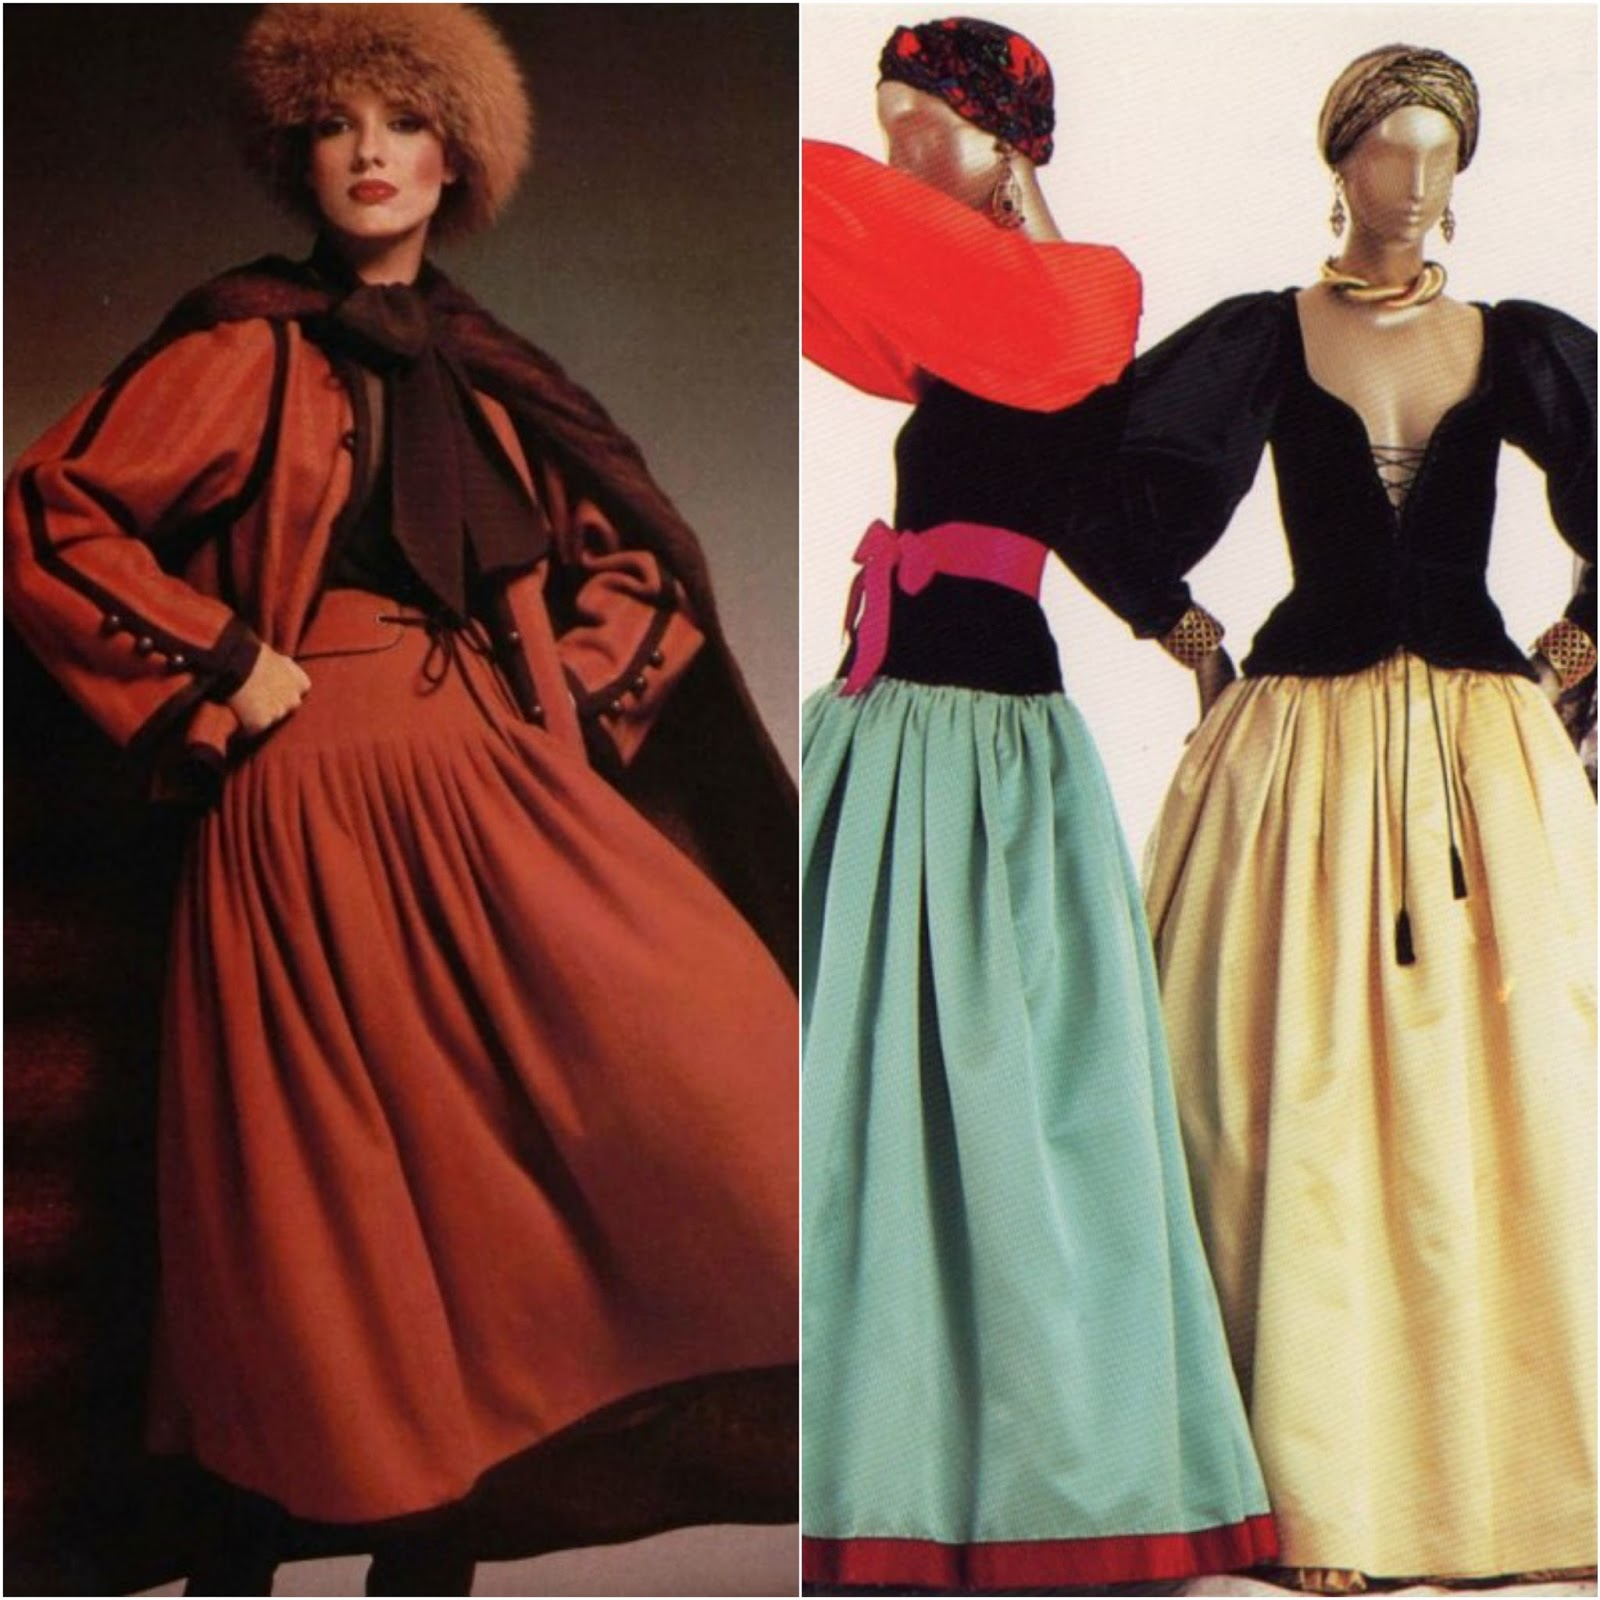 """561f1b52136 Yves Saint Laurent Haute Couture Fall Winter 1976 1977 """"Ballets Russes""""  Collection"""